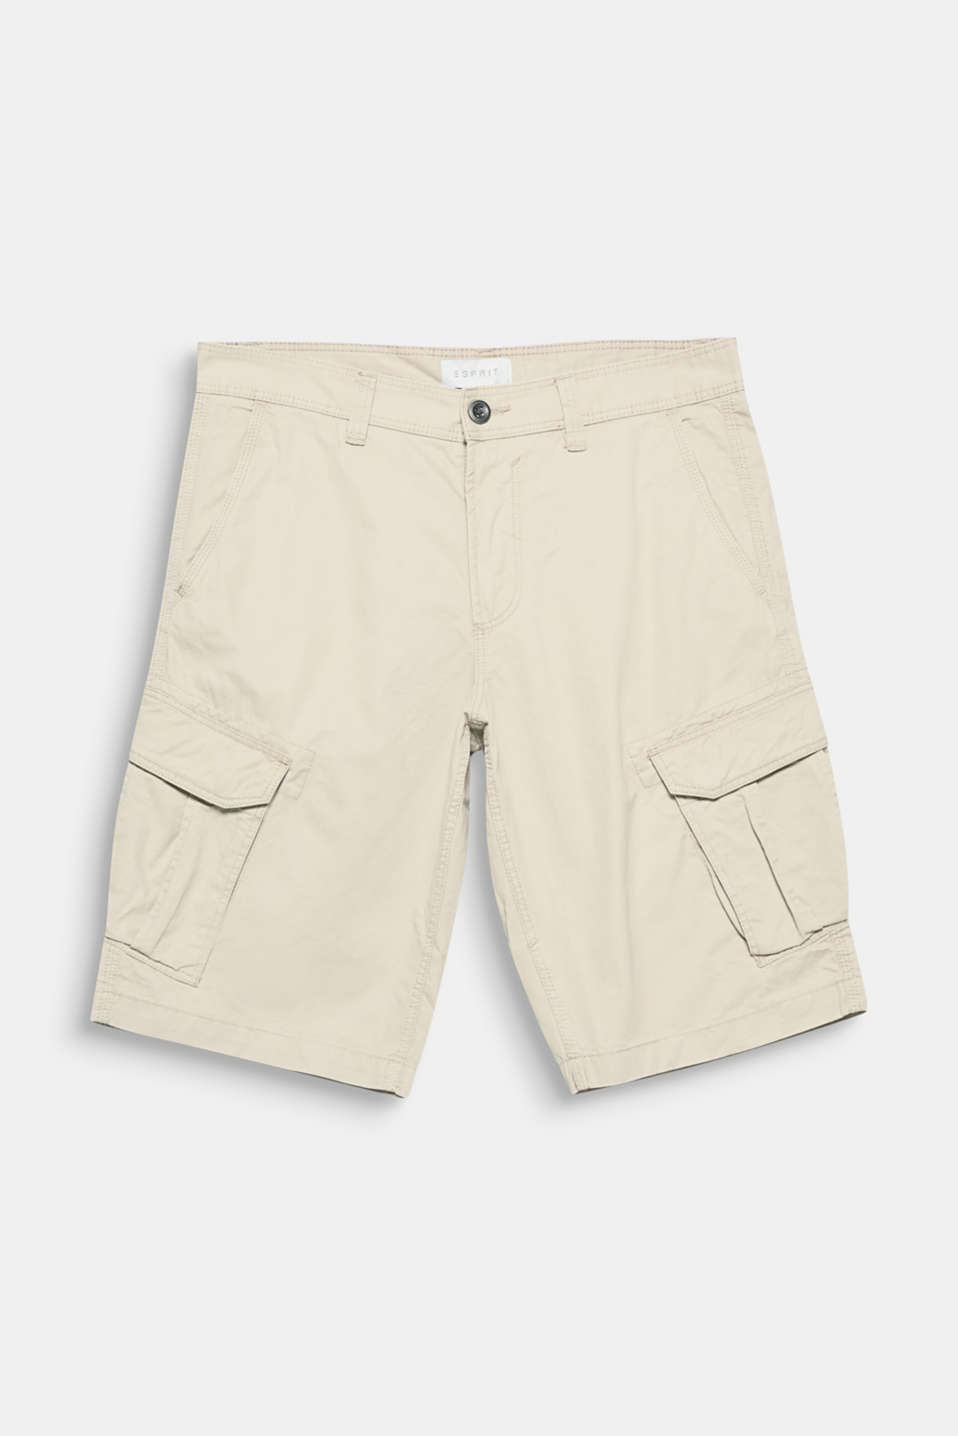 A summer classic: these Bermuda cargo shorts are distinguished by their characteristic bellows pockets.